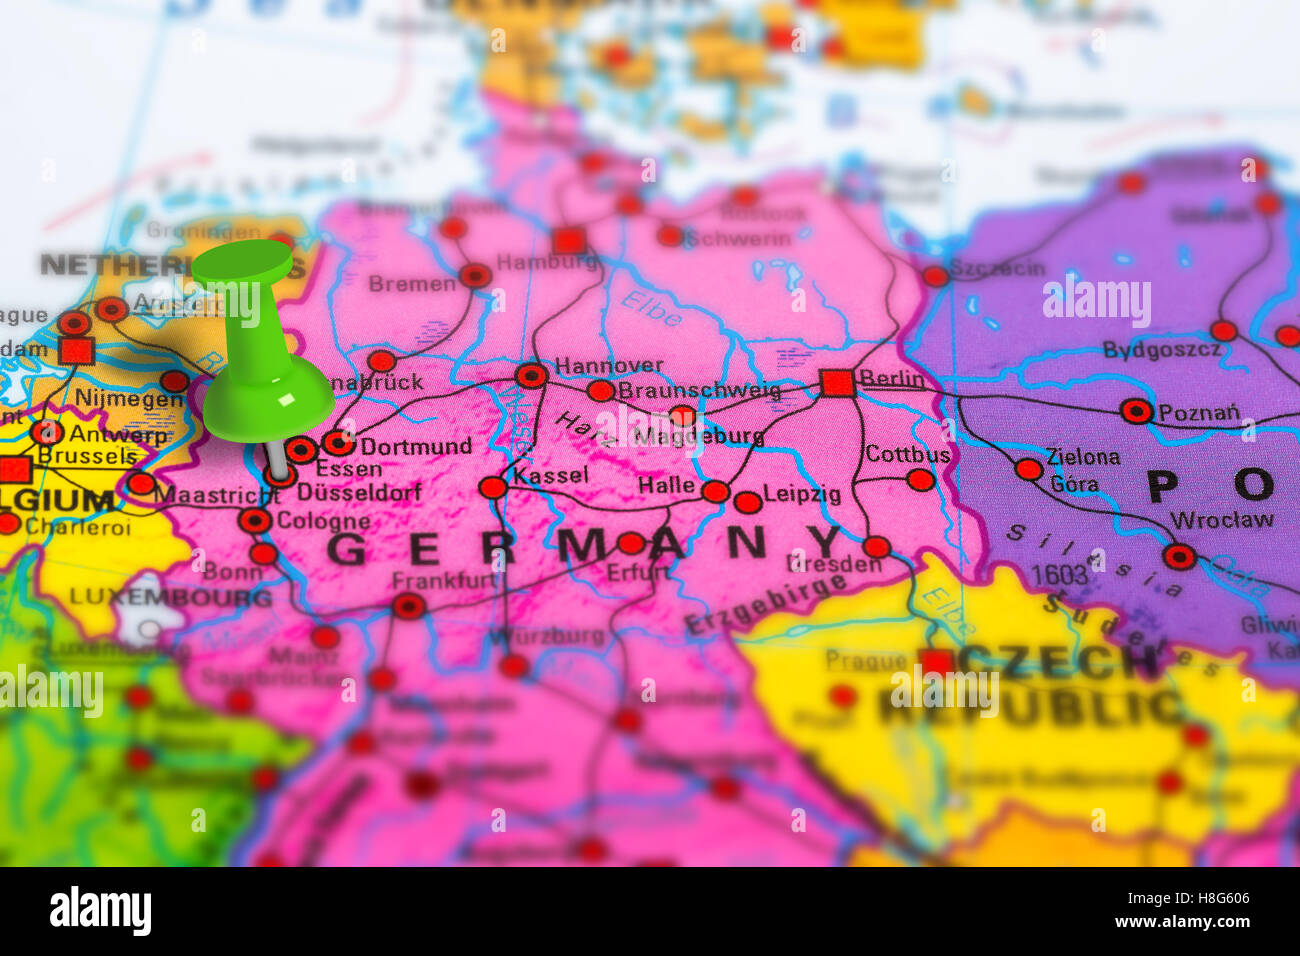 Germany Dusseldorf map Stock Photo: 125745766 - Alamy on map of cardiff germany, map of ludwigshafen germany, map of oslo germany, map of brussels germany, map of bremen germany, map of rotterdam germany, transportation map of germany, map of birmingham germany, map of geilenkirchen germany, map of ratingen germany, map of kaiserslautern germany, map of paris germany, map of munchen germany, map of germany airports, map of mecklenburg vorpommern germany, map of st goar germany, map of antwerp germany, map of luneburg germany, map of konigsberg germany, map of bad homburg germany,